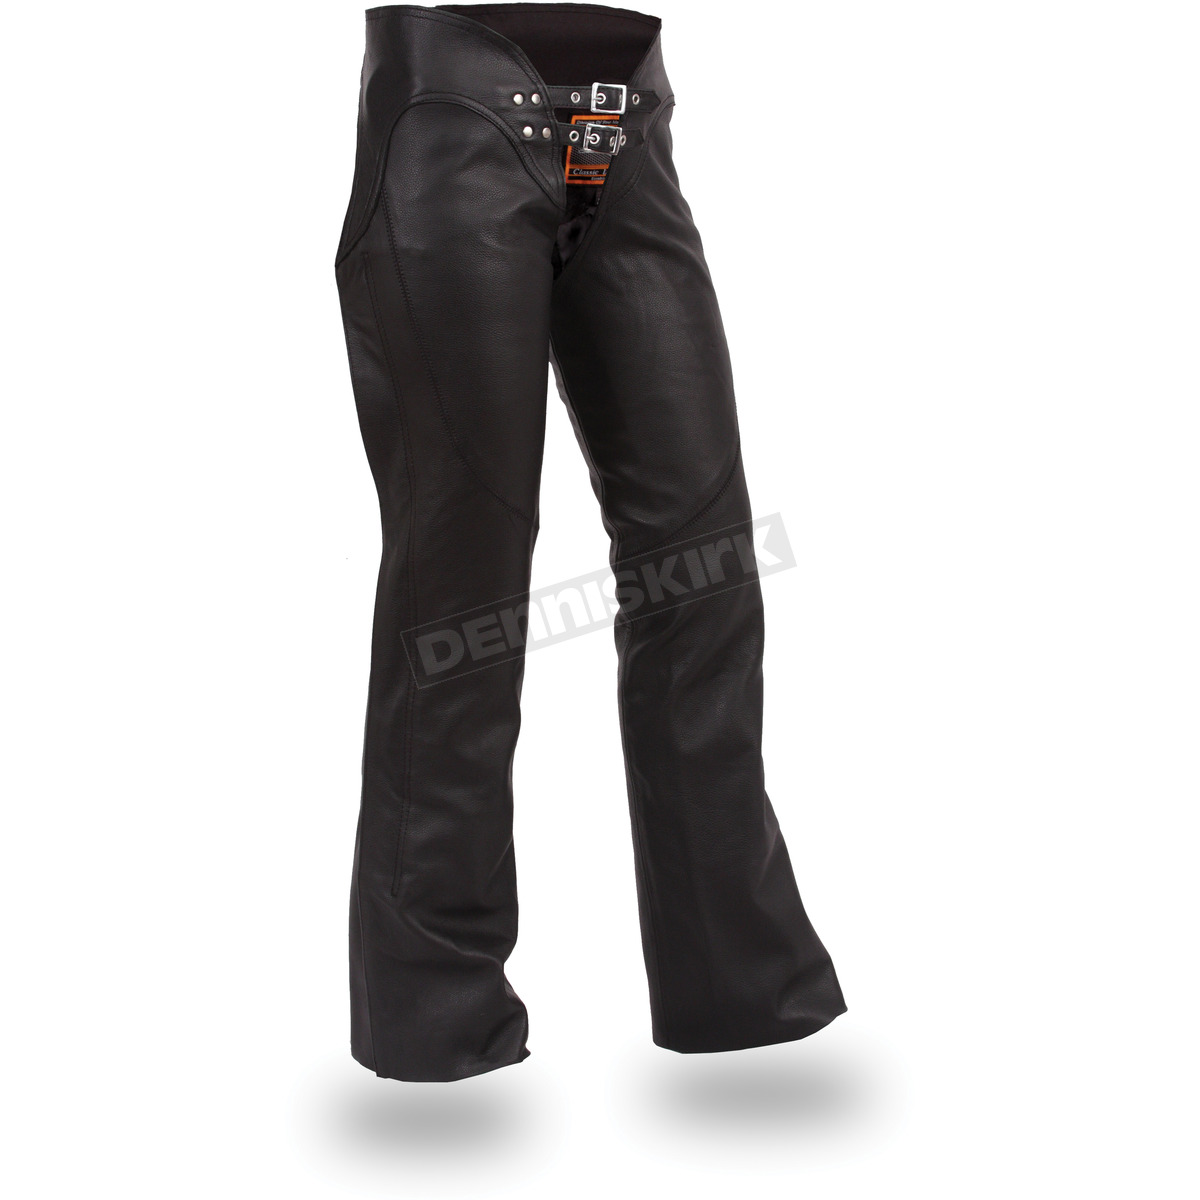 first manufacturing co. women's black sissy chaps - fil-745-csl-s